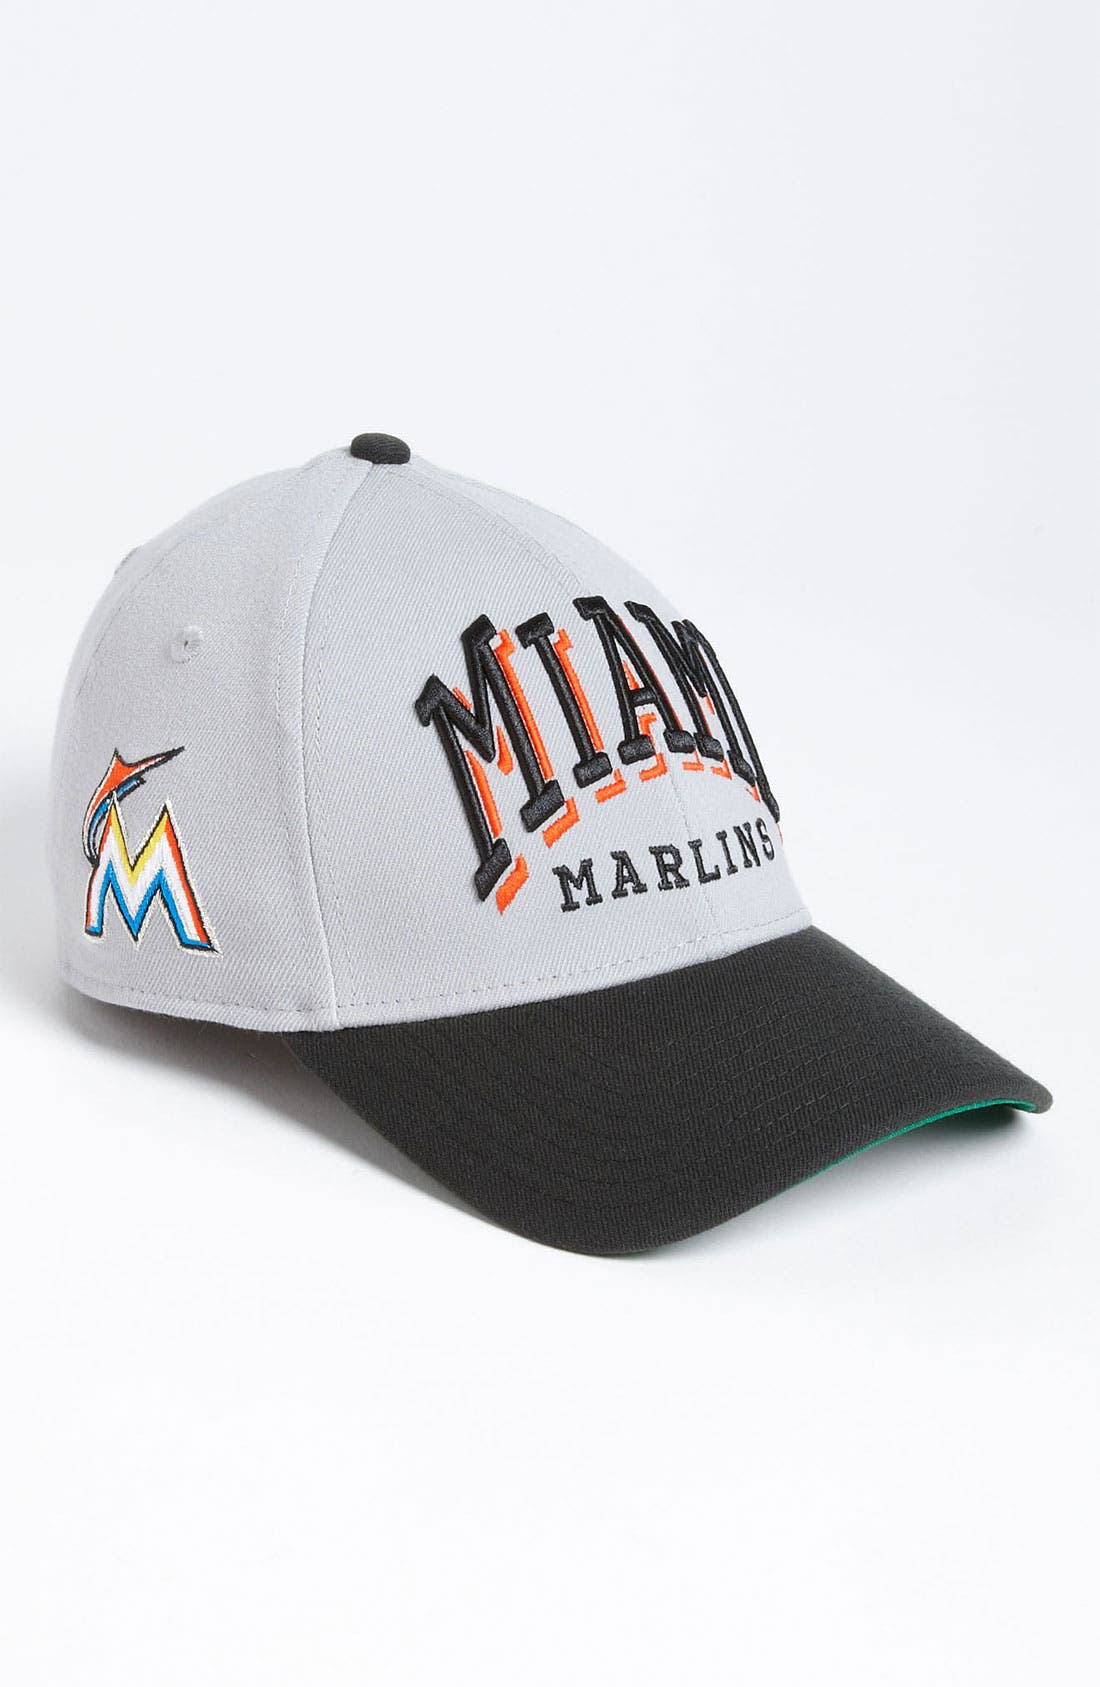 Alternate Image 2  - New Era Cap 'Miami Marlins - Arch Mark' Fitted Baseball Cap